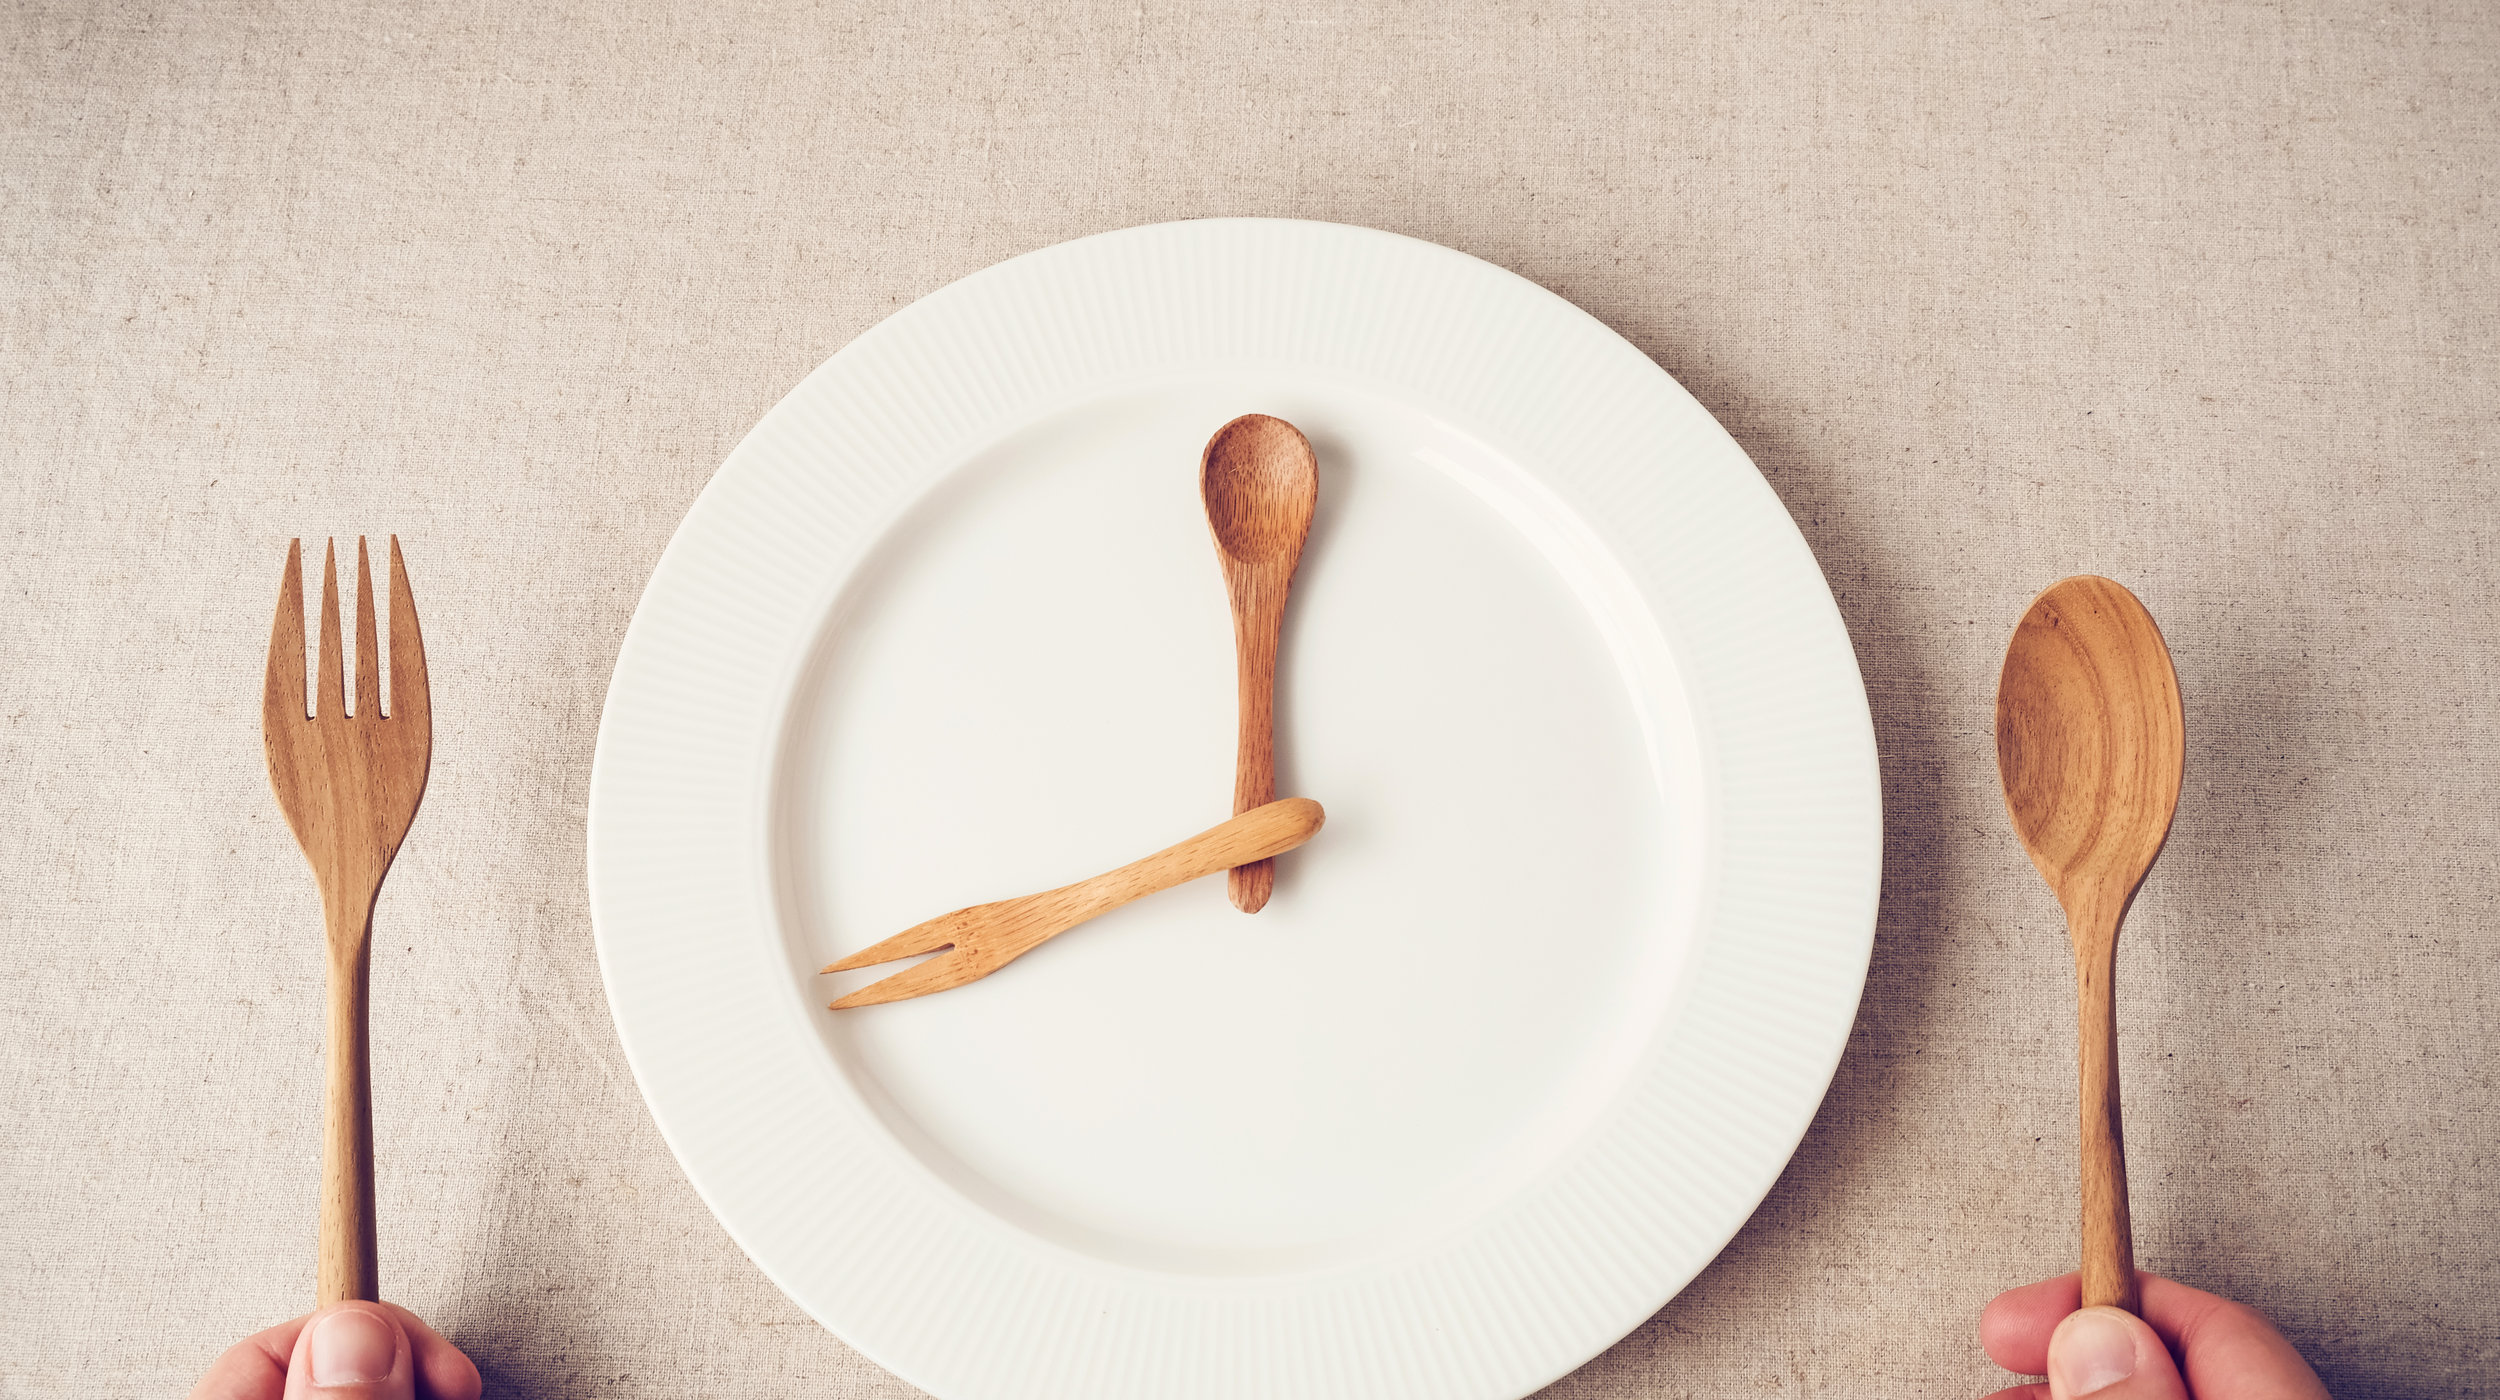 Fasting is a Terrible Way to Lose Weight